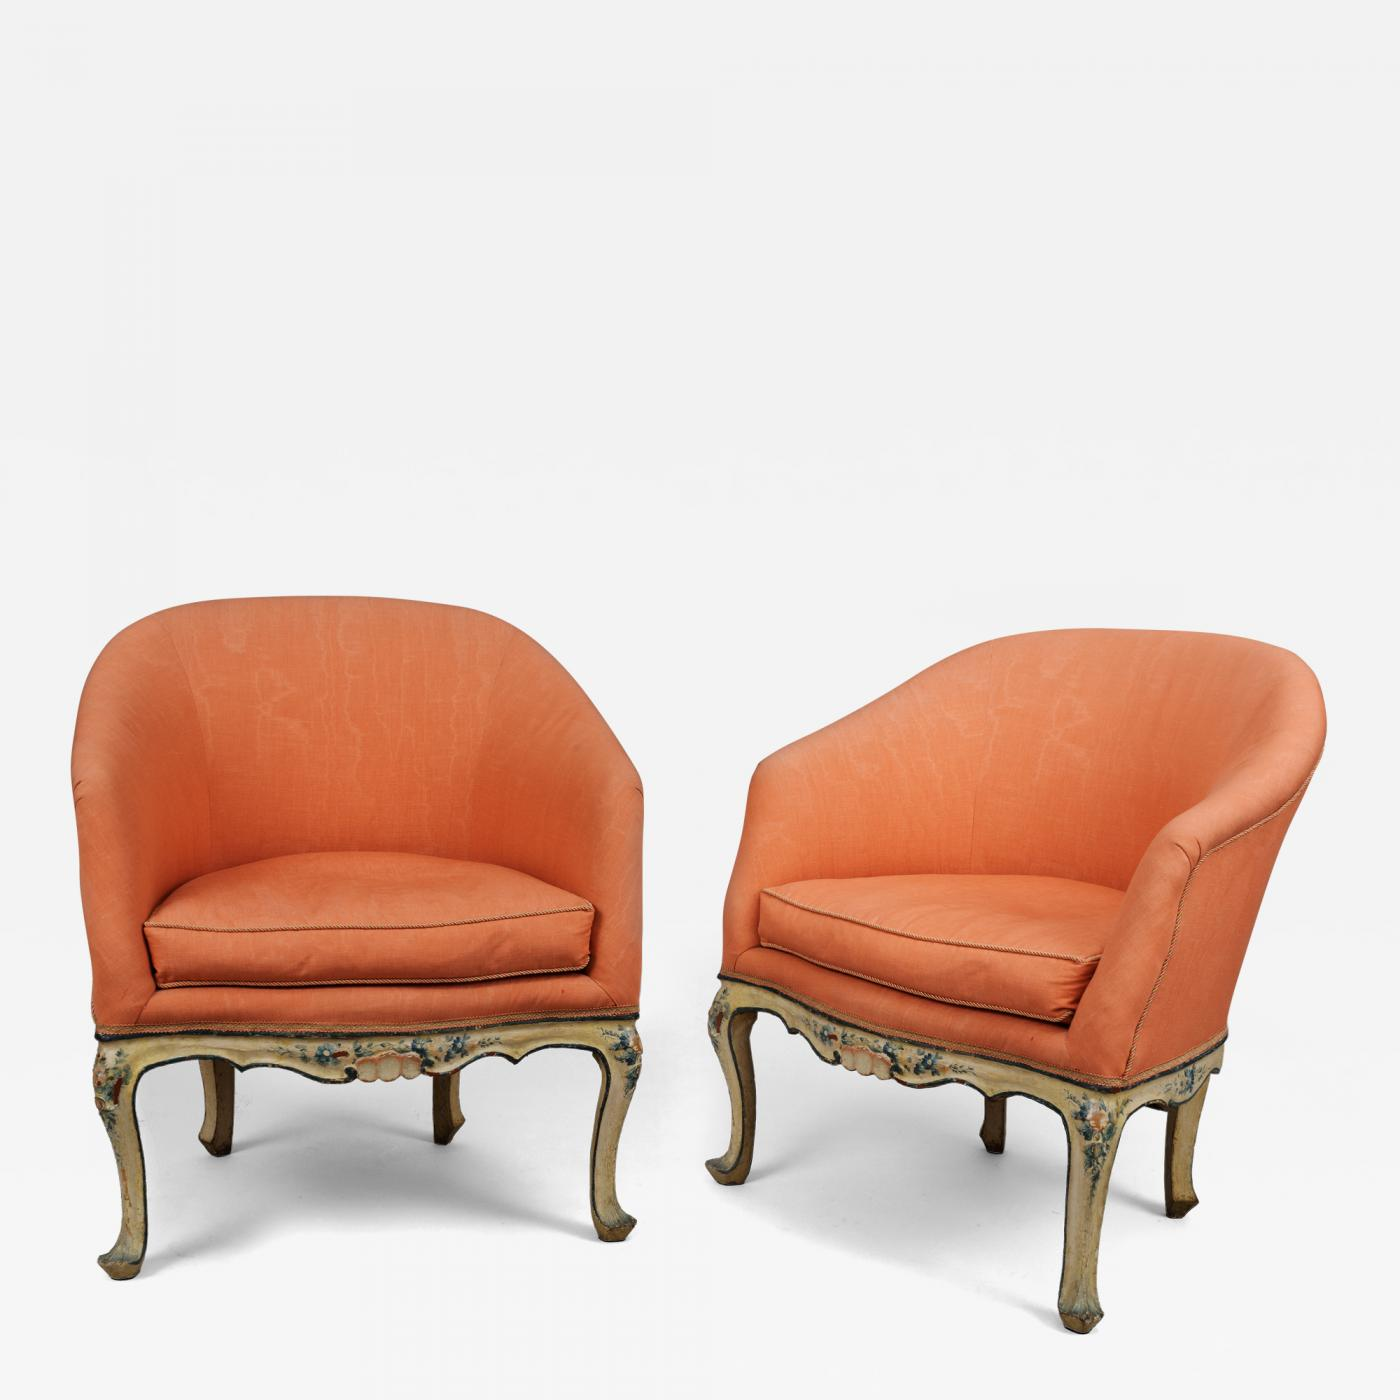 Poltrone A Pozzetto A Pair Of Painted Wood Tub Chairs Poltrone A Pozzetto